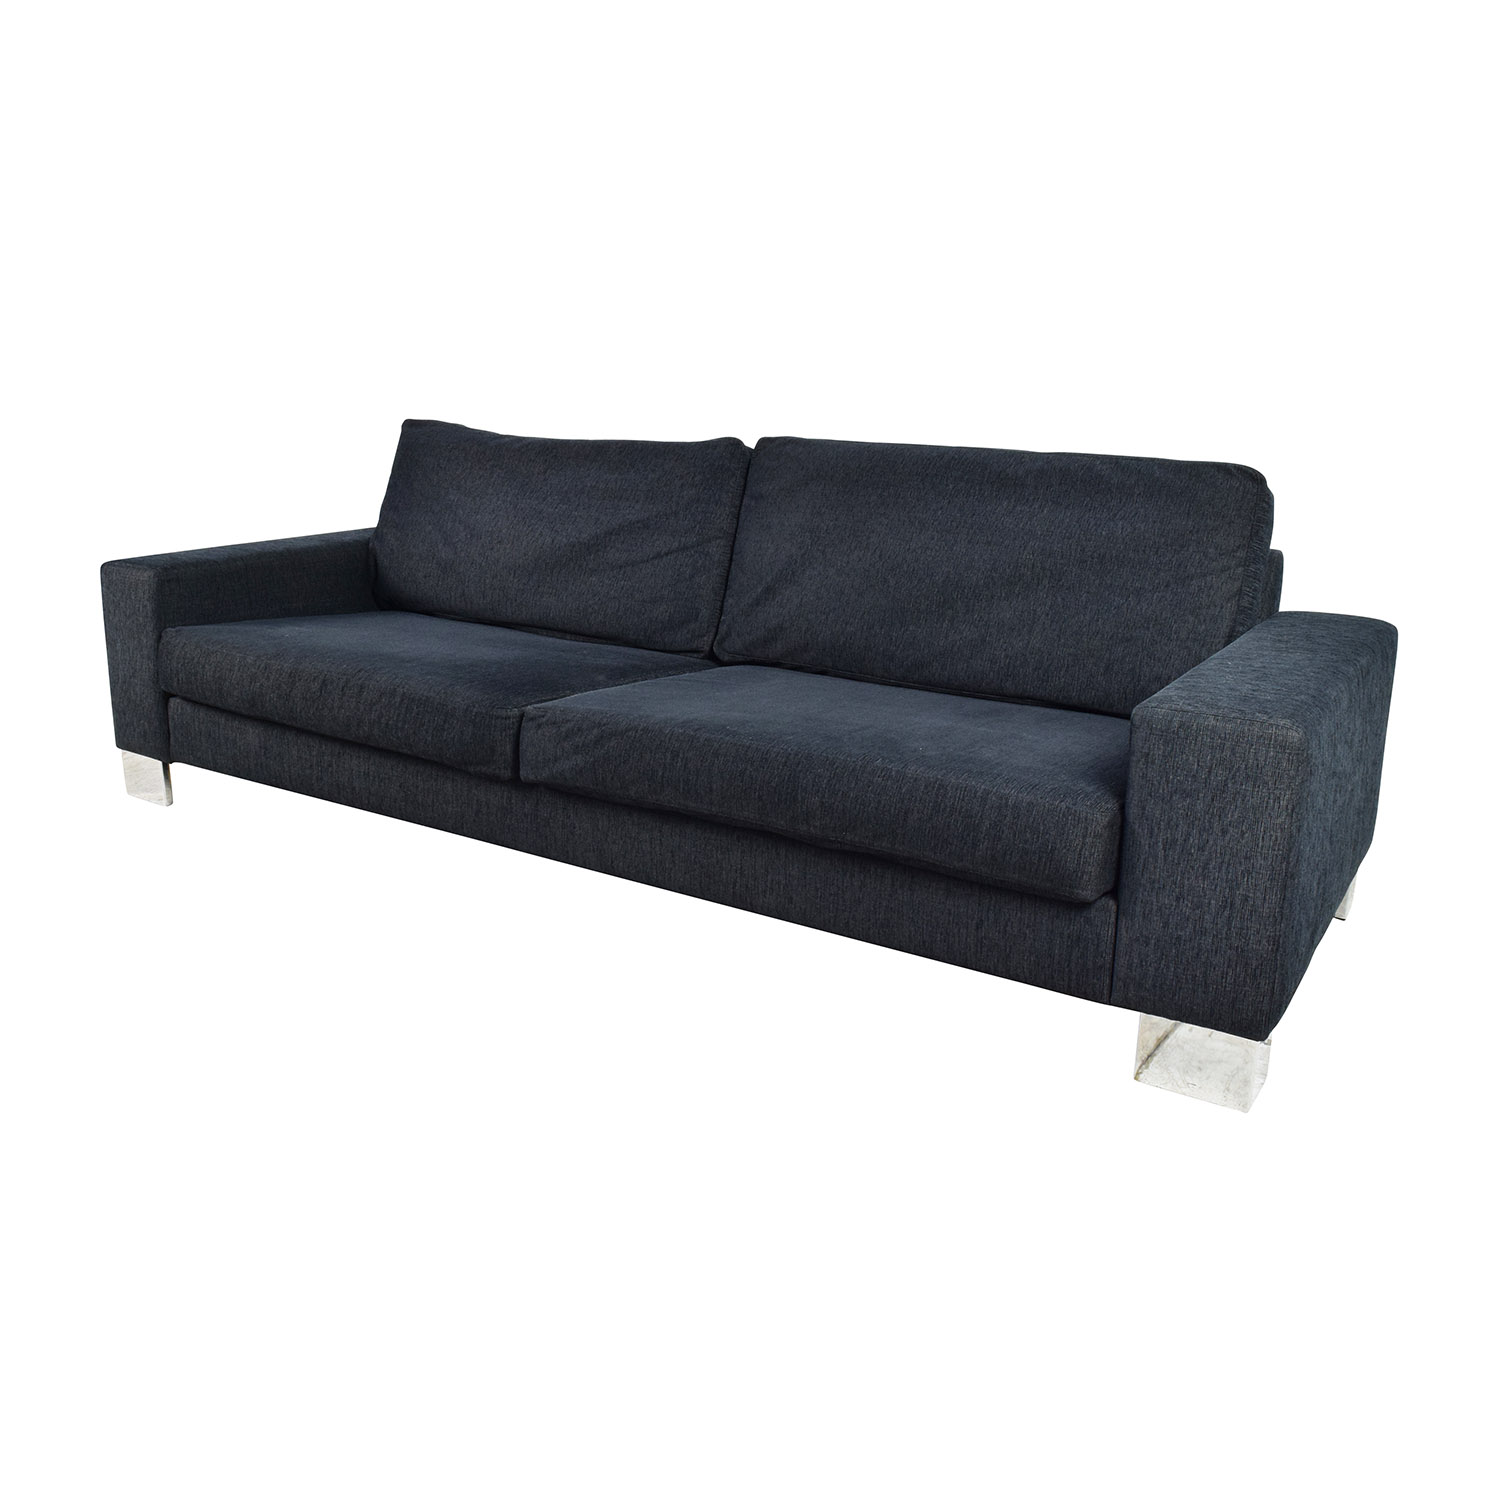 74 off boconcept boconcept cenova dark navy sofa sofas. Black Bedroom Furniture Sets. Home Design Ideas